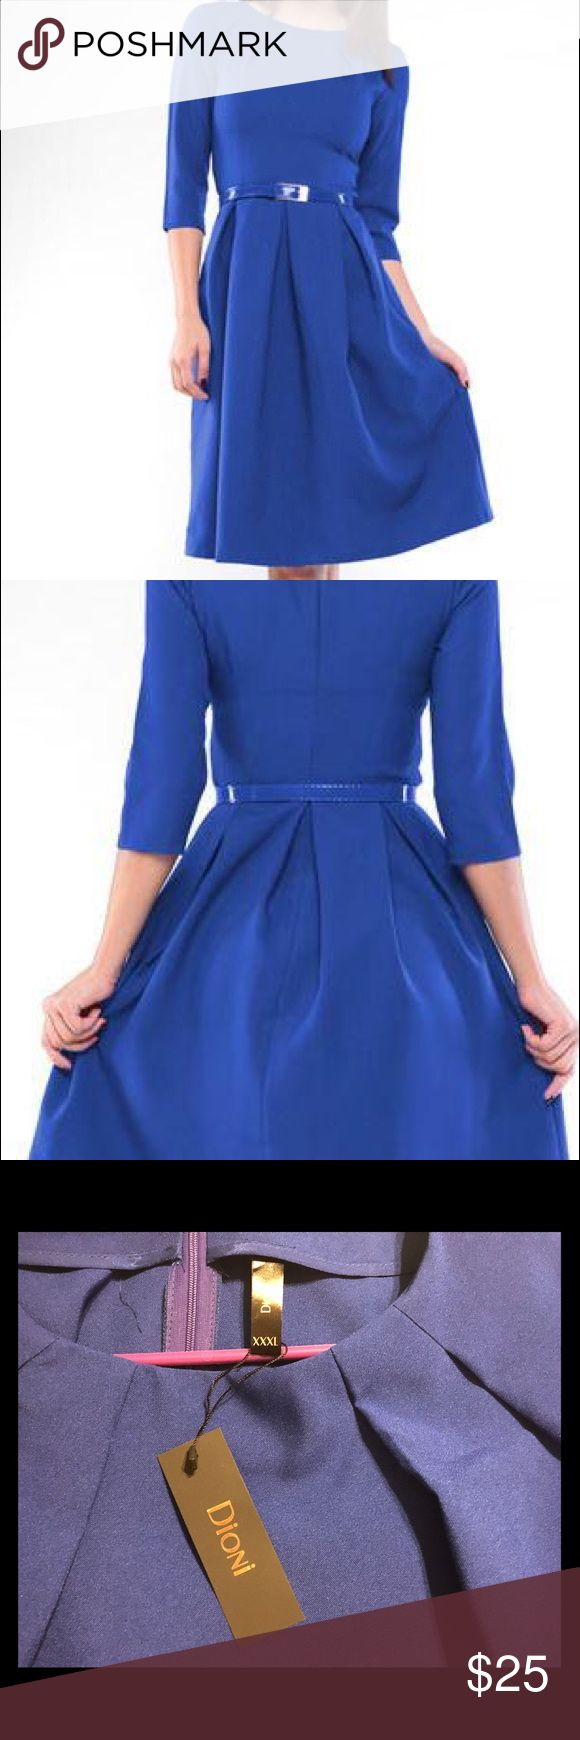 Dioni Electric Royal Blue A-line Dress Elegant in its simplicity, this classic A-line dress boasts a breathtaking solid hue and figure-defining waist. European sizing: XXXL = 14 US • Never worn. Includes dress only - belt not included • 39'' long from high point of shoulder to hem • 35% cotton / 35% viscose / 30% polyester • Machine wash; dry flat Dresses